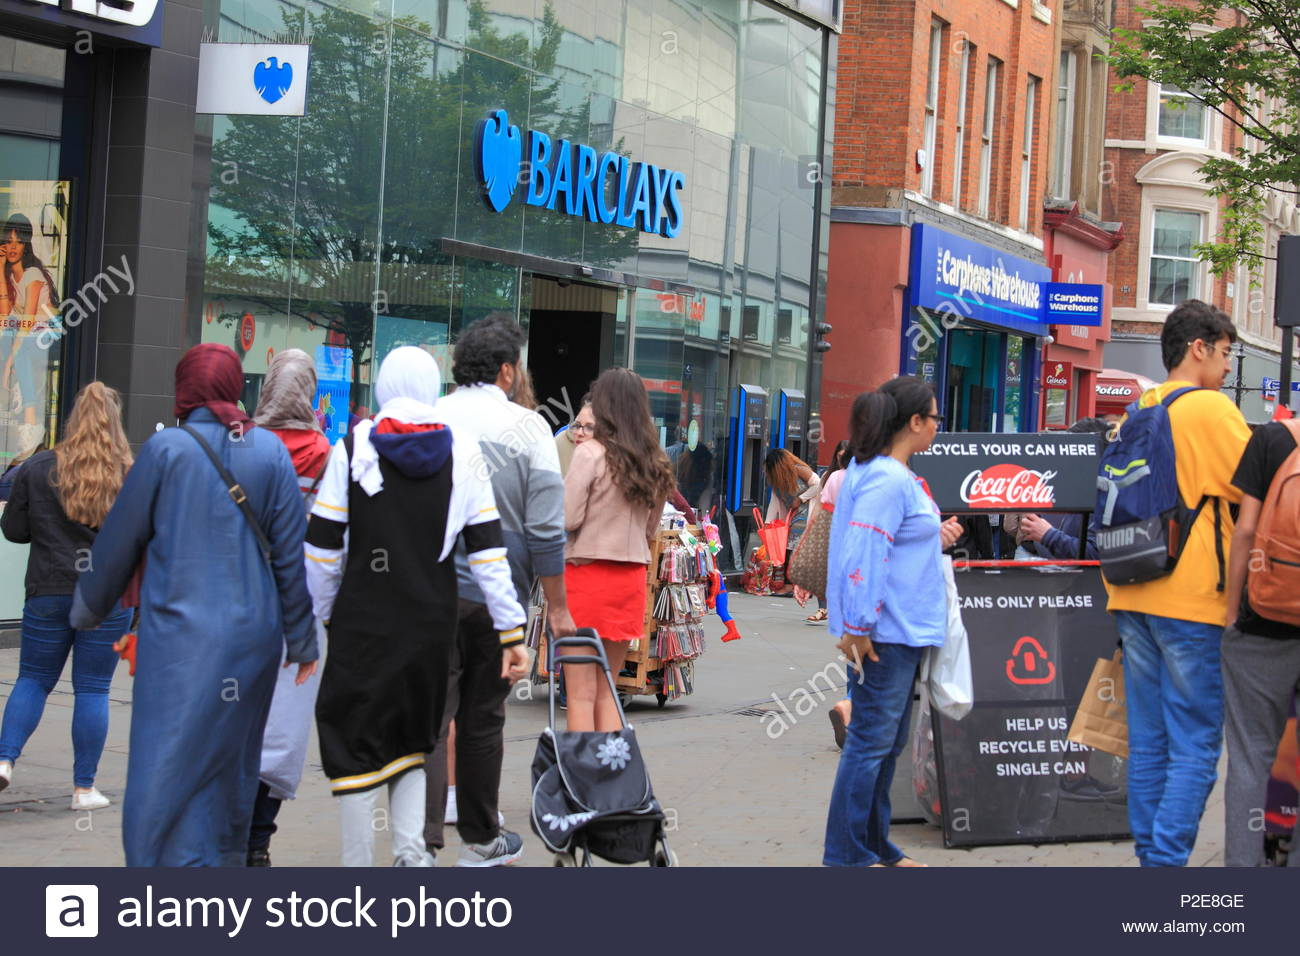 Barclays Bank at Market Street Manchester on a Wednesday afternoon as shoppers/people go about their day at Manchester City Centre Uk Summer June 2018 - Stock Image